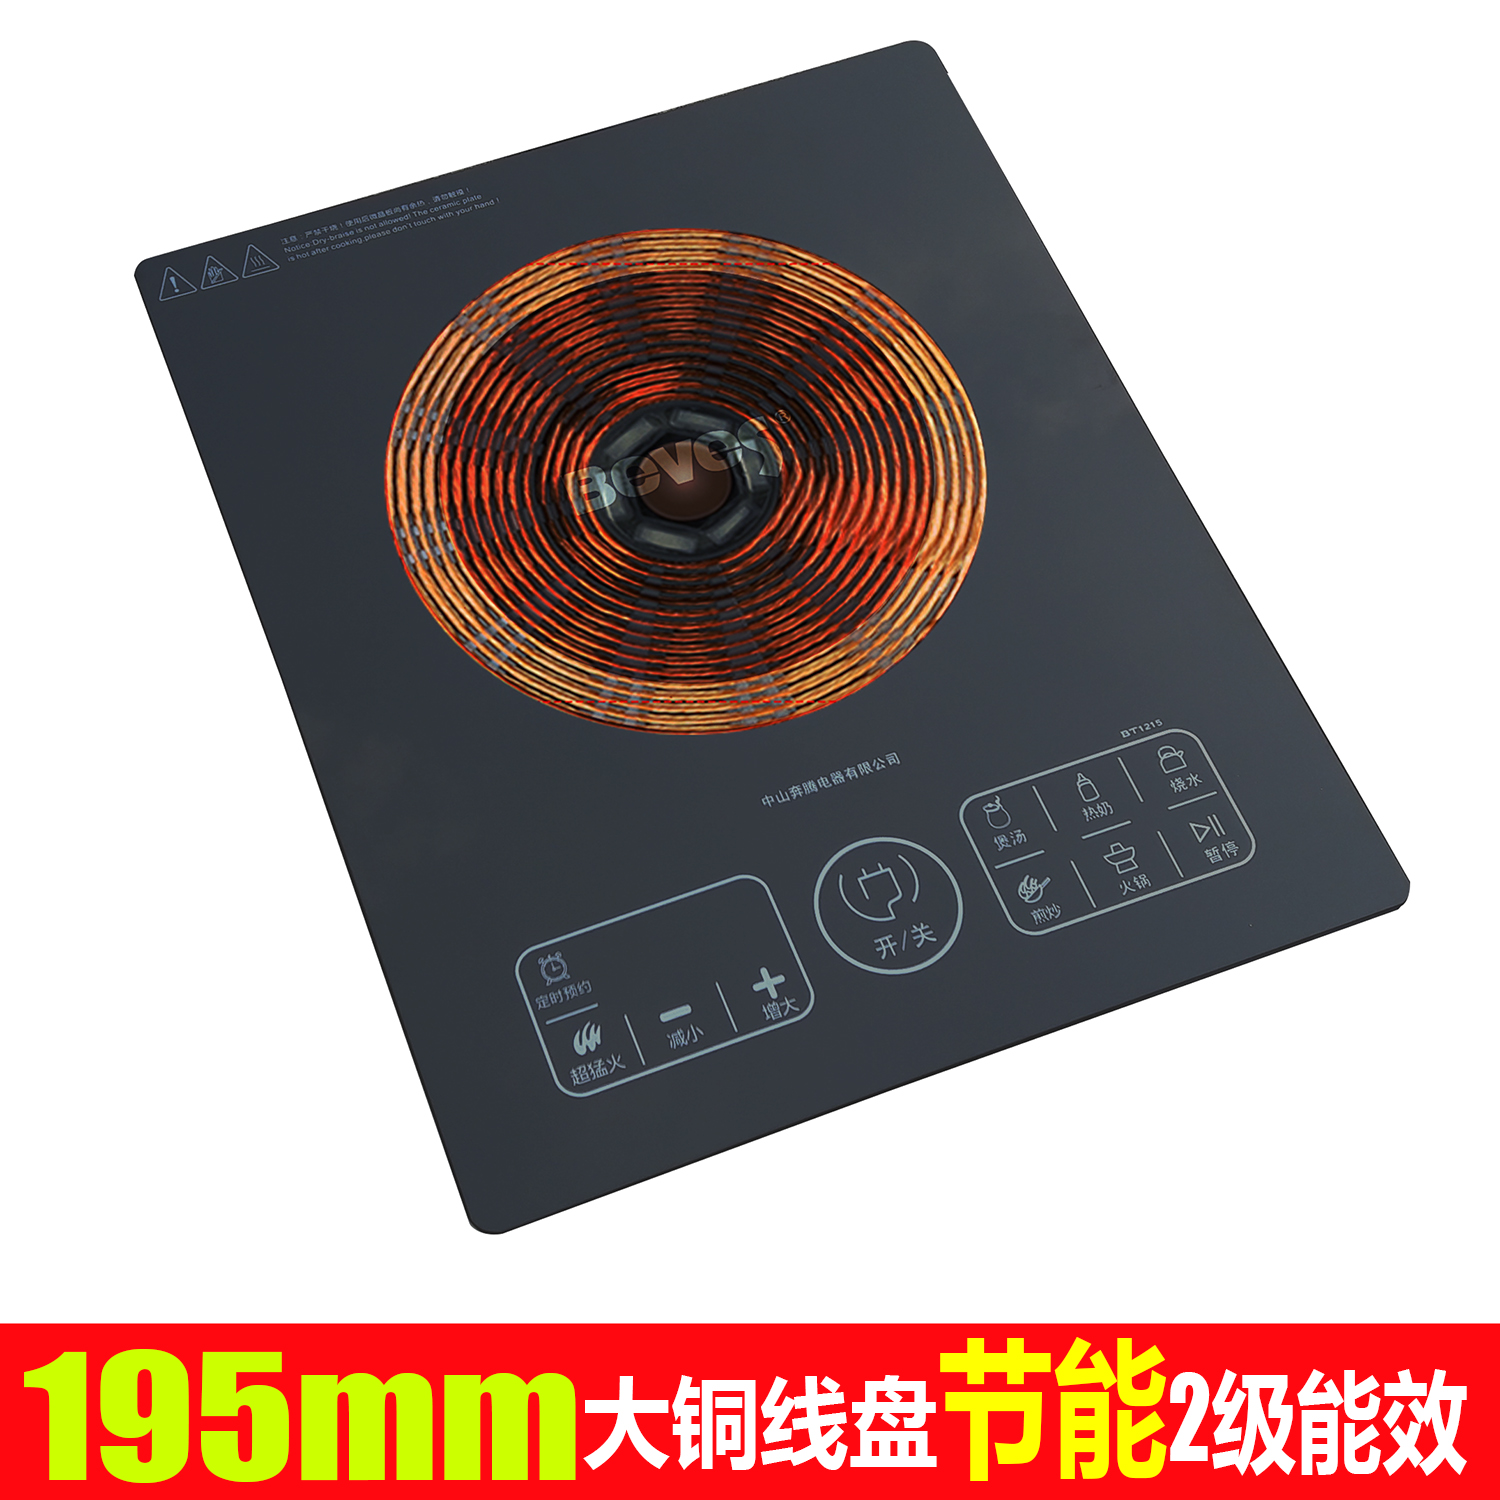 Pentium beves electromagnetic cooker embedded electromagnetic oven stove single household high-power explosion intelligent touch sheet of cooking